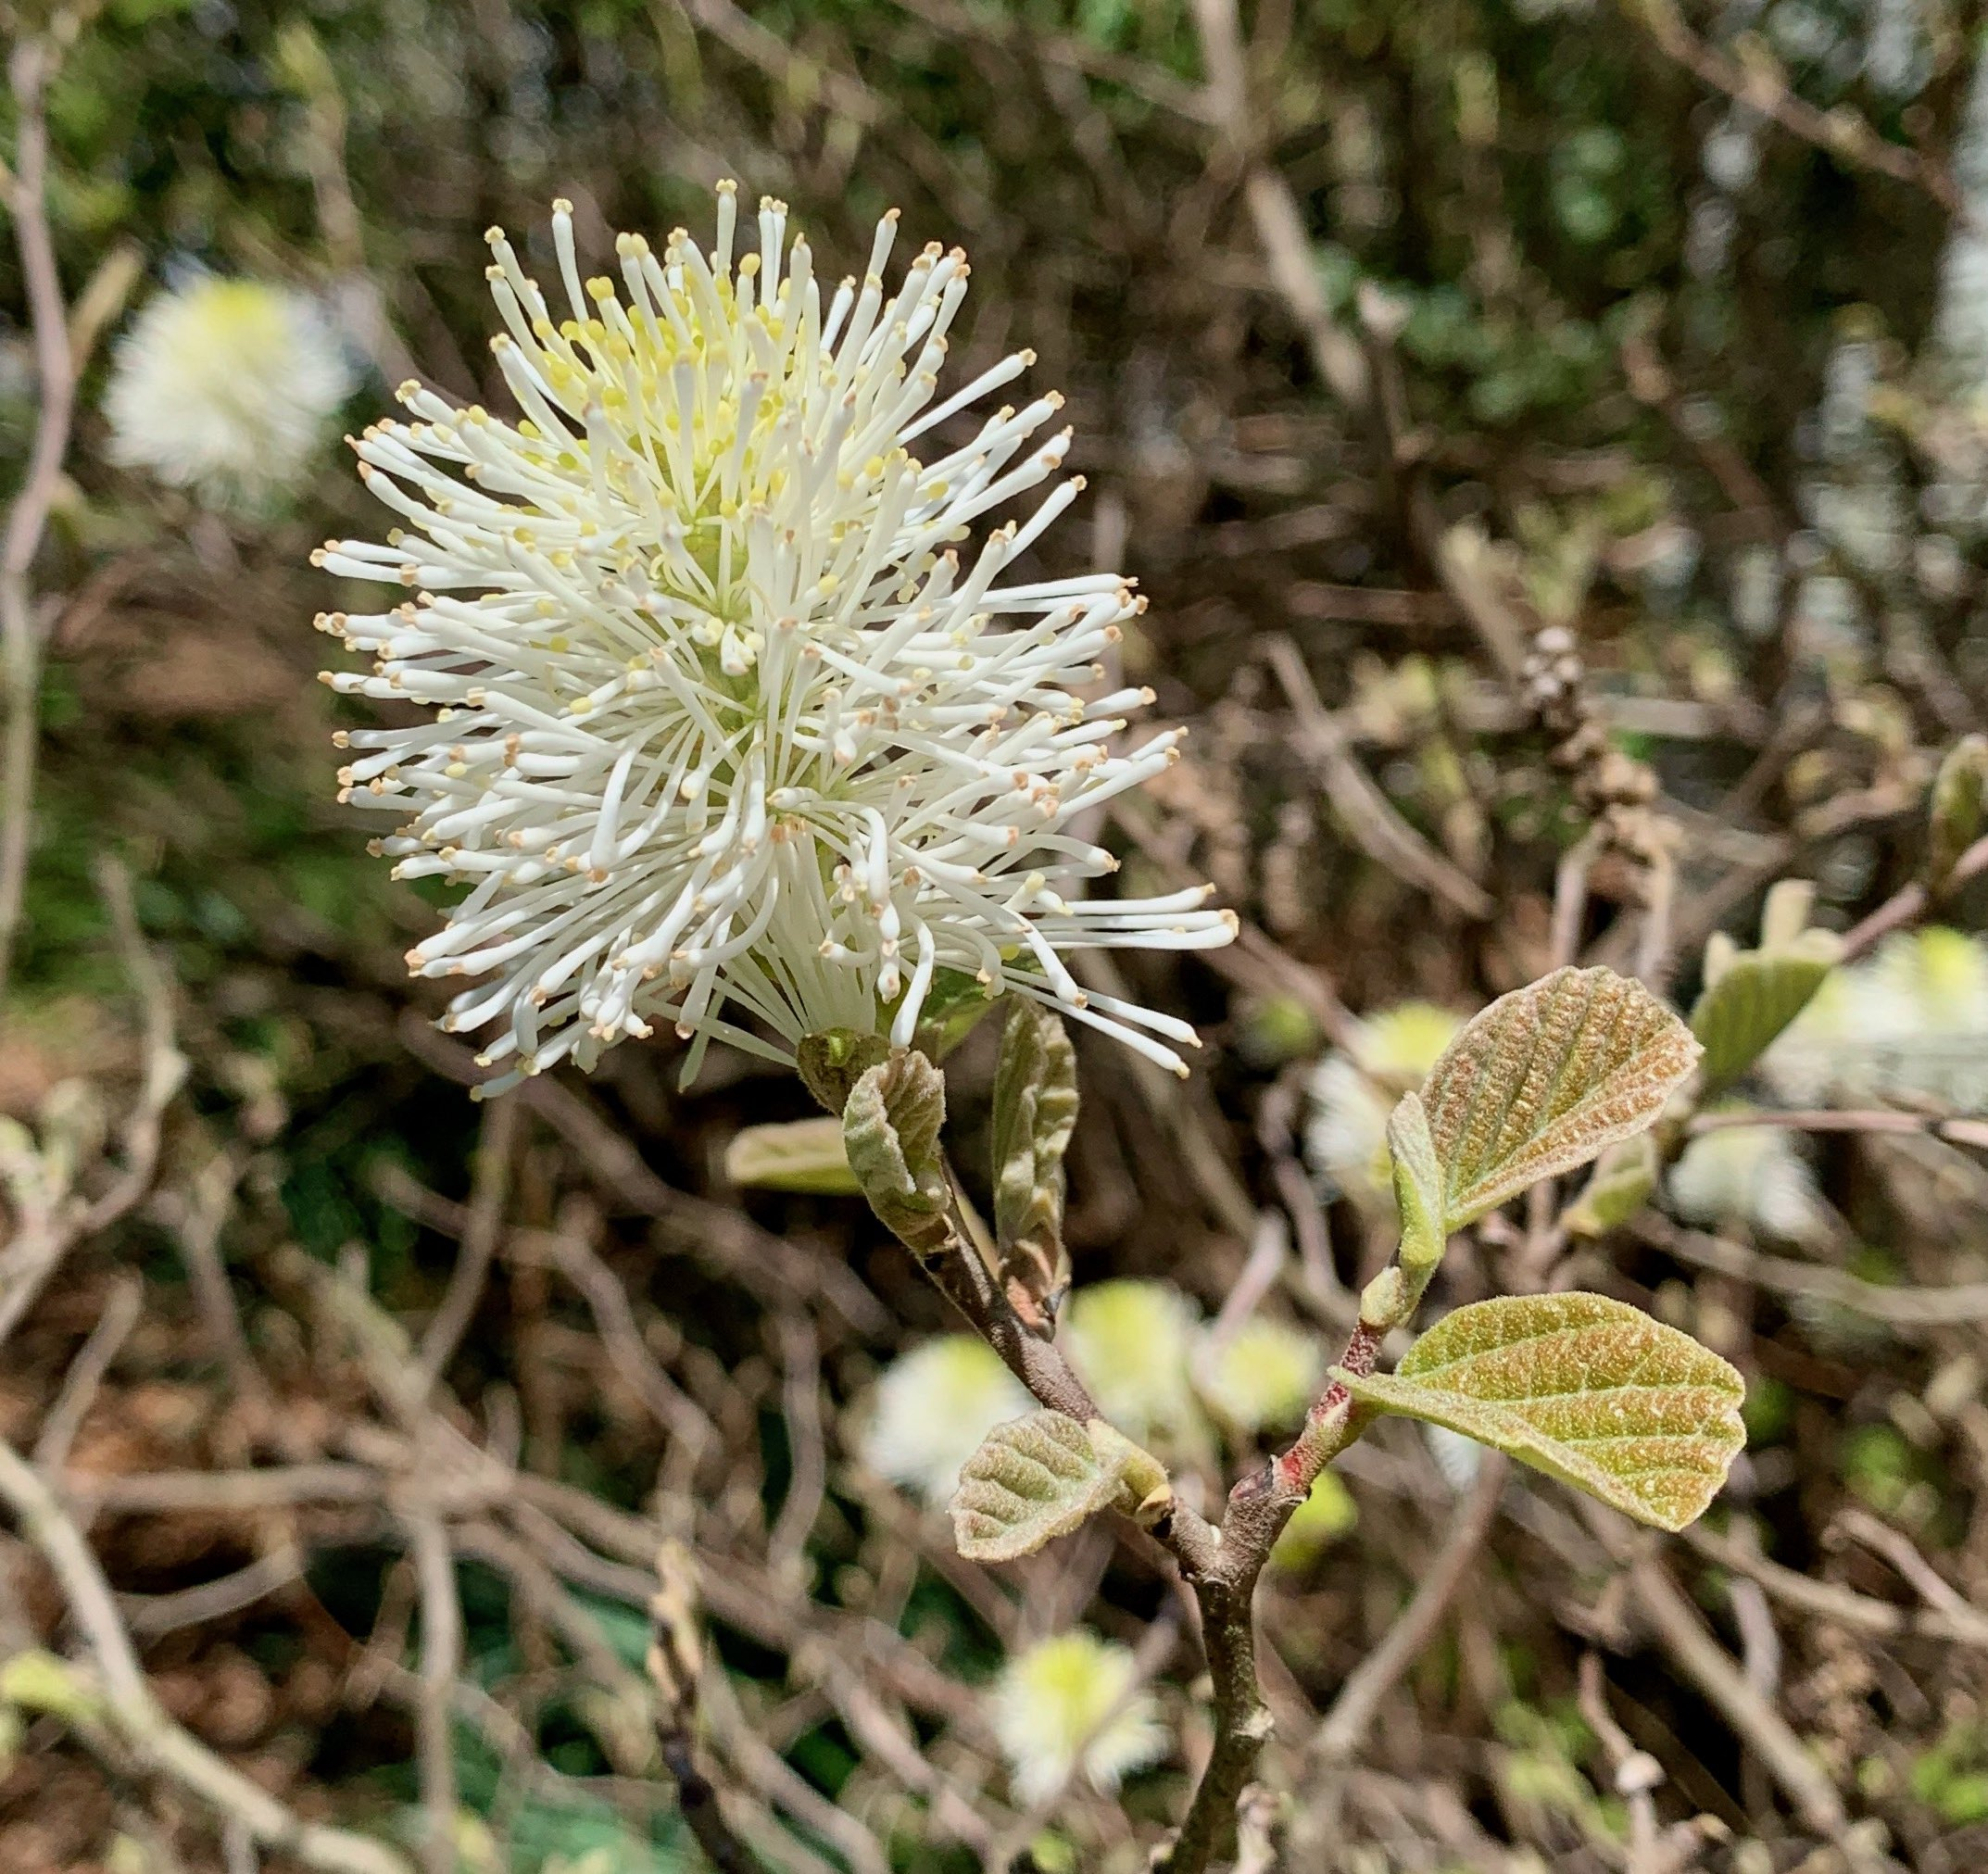 The Scientific Name is Fothergilla major. You will likely hear them called Large Witch-alder, Mountain Witch-alder, Tall Fothergilla. This picture shows the Brushlike flowers bloom at the tips of the twigs of Fothergilla major